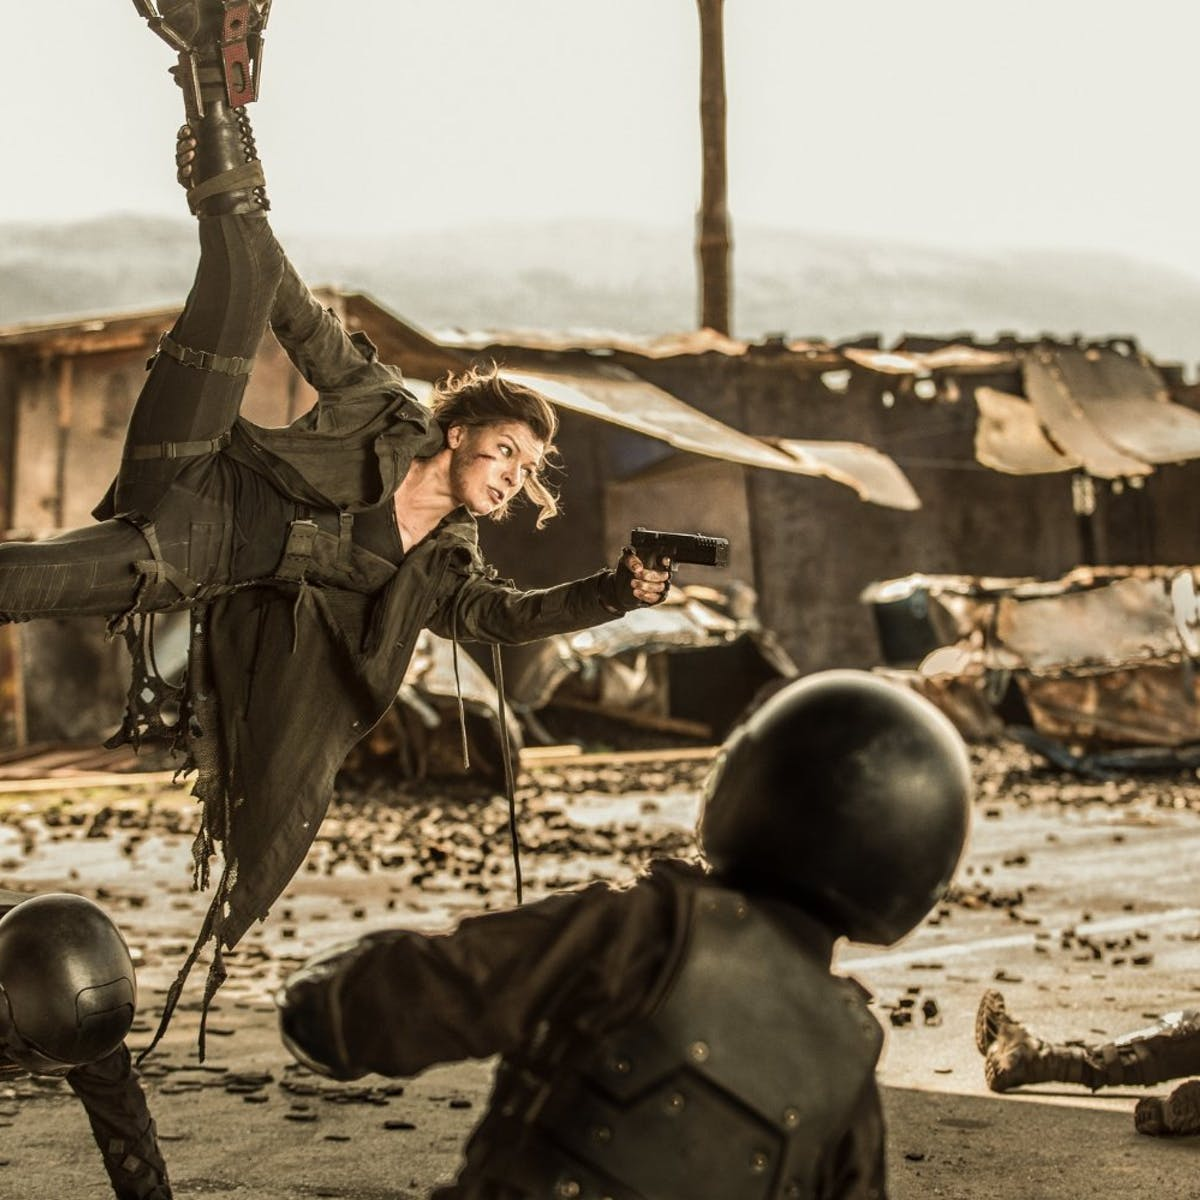 Too big, too expensive and too silly: why video game movies fail